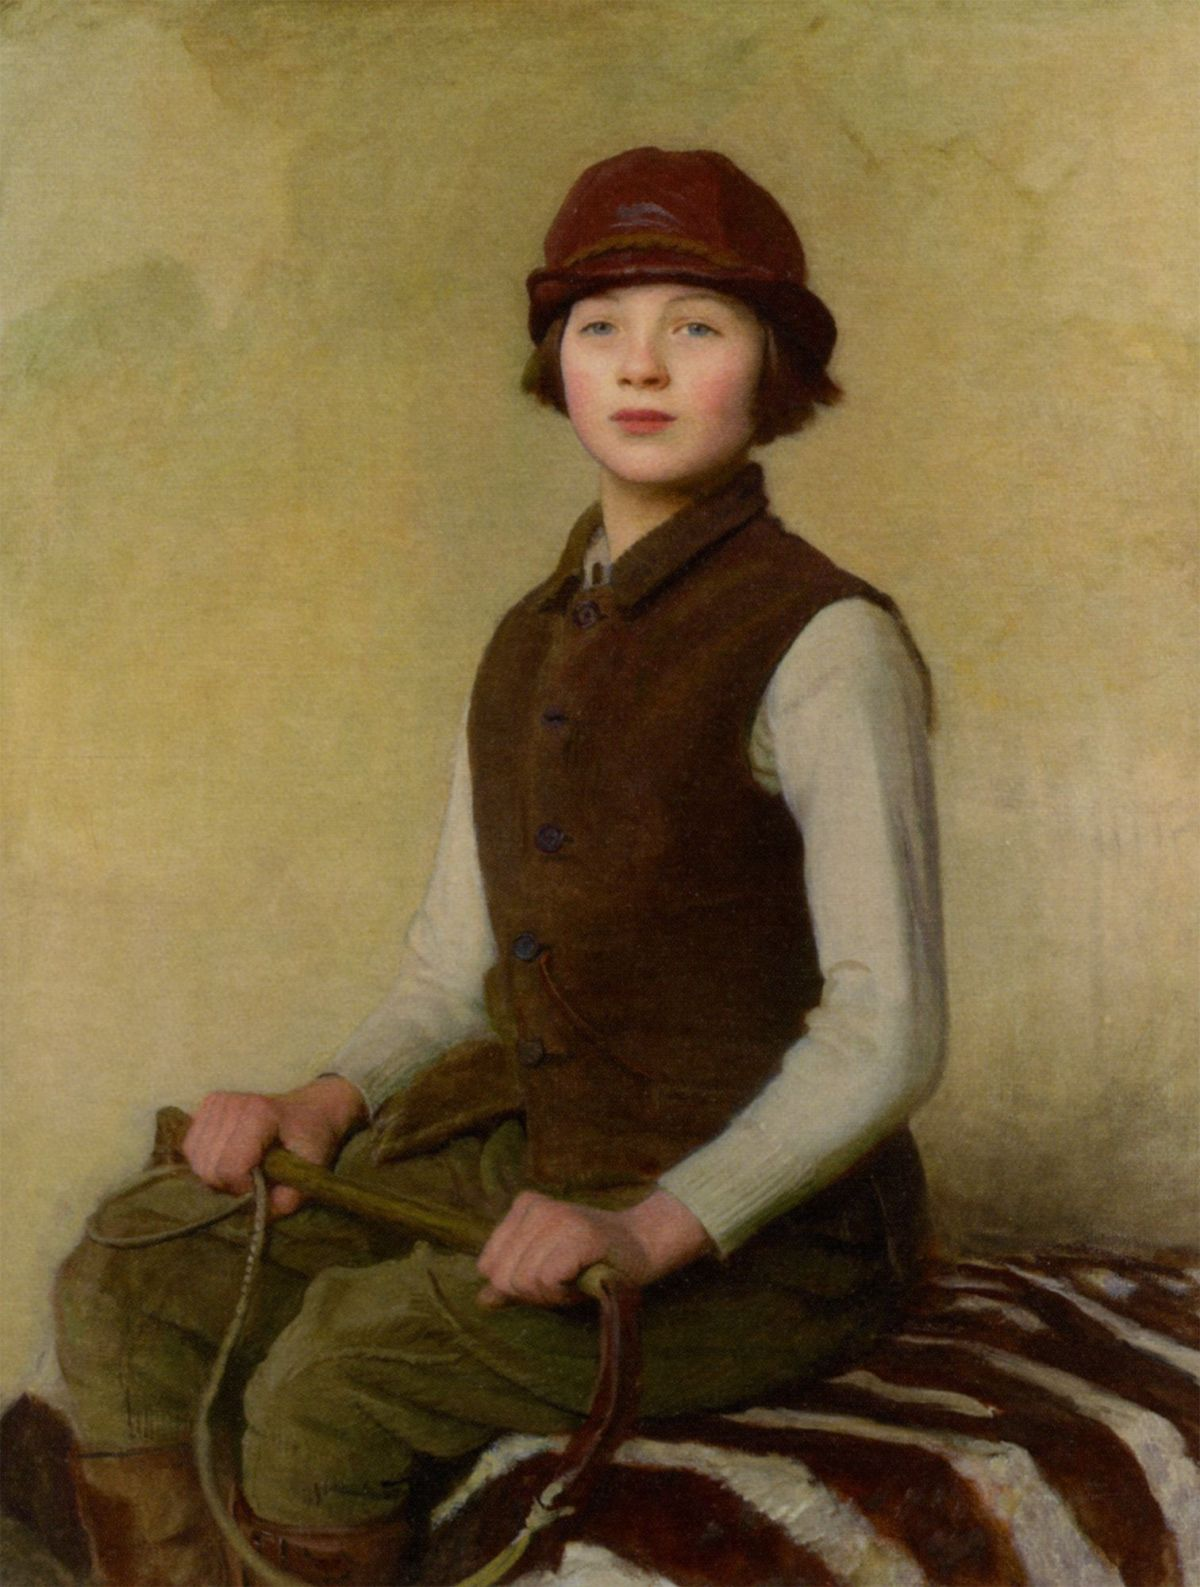 The Saddlers Daughter by George Spencer Watson